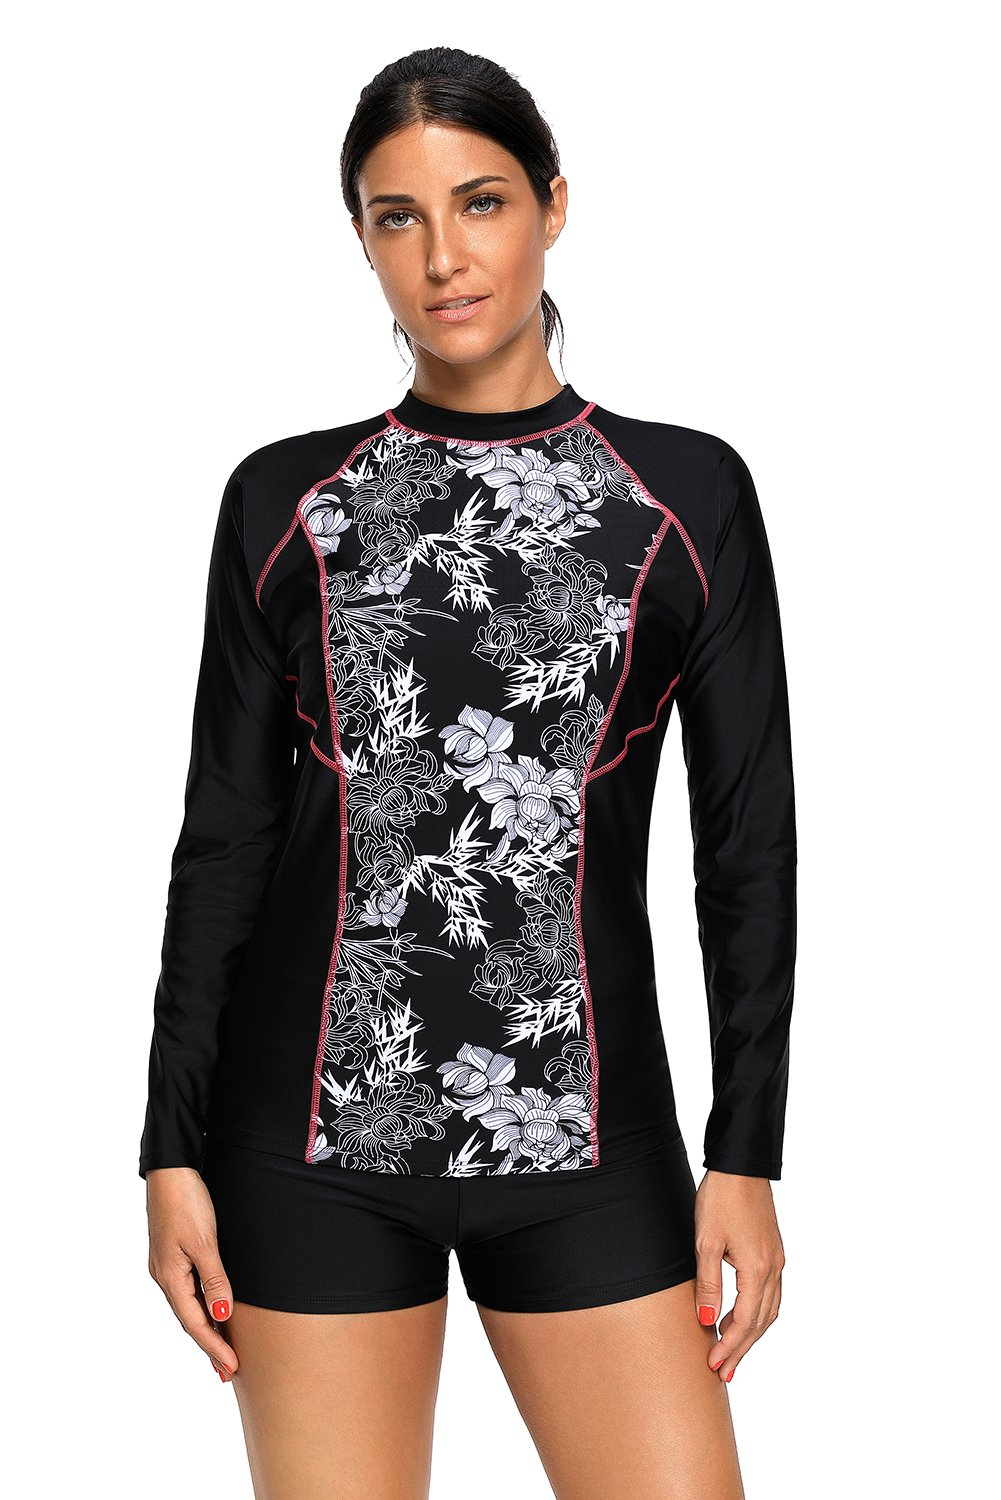 Bdcoco Women's Floral Print Long Sleeve Surfing Two Piece Swimsuit Rash Guards